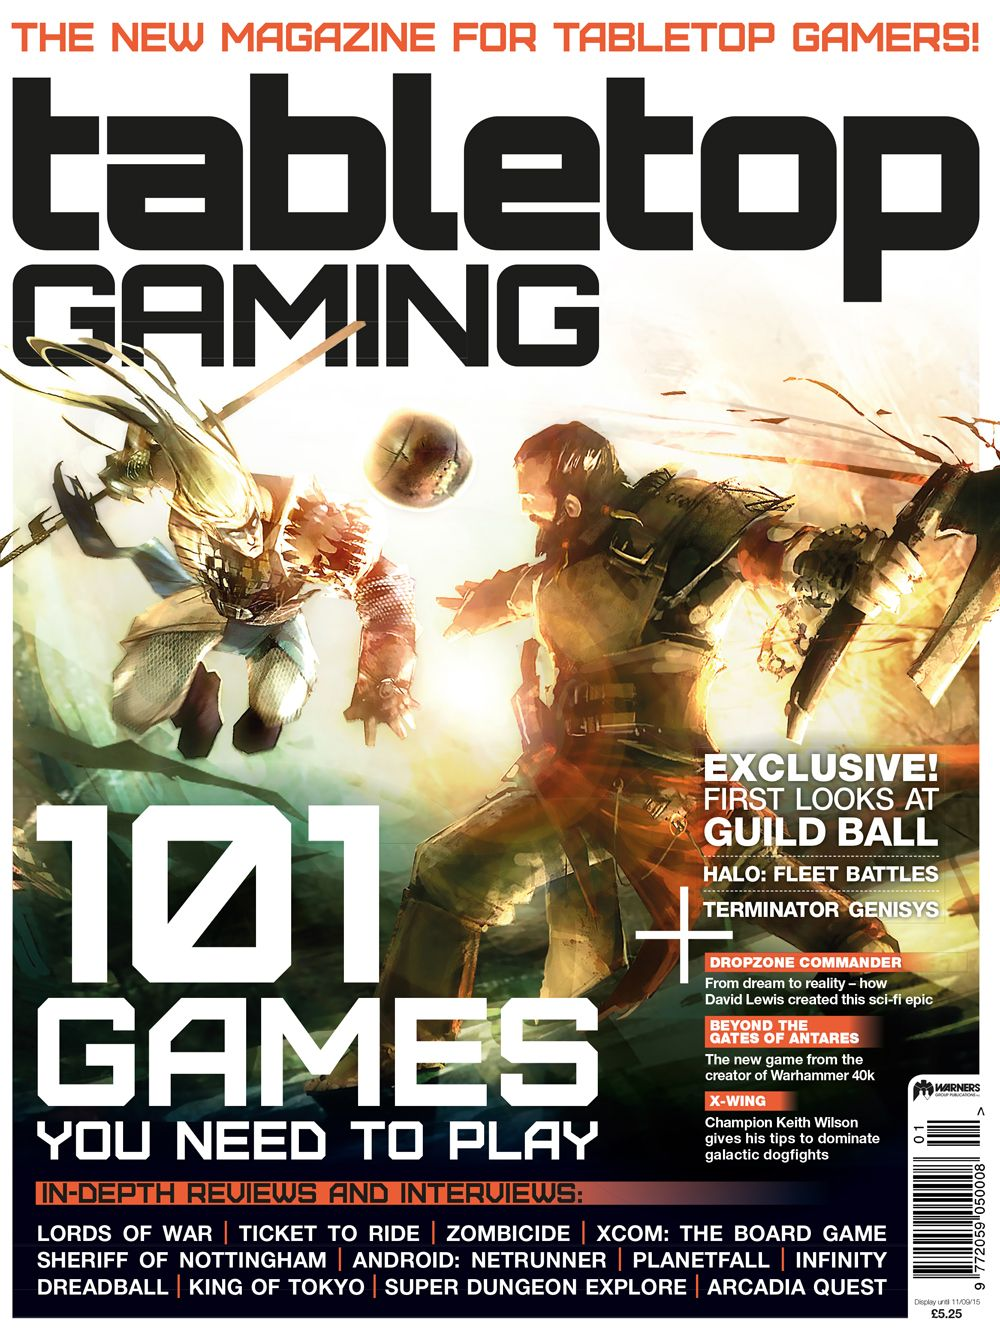 BRAND NEW TABLETOP GAMING MAGAZINE LAUNCHES TODAY AT UK